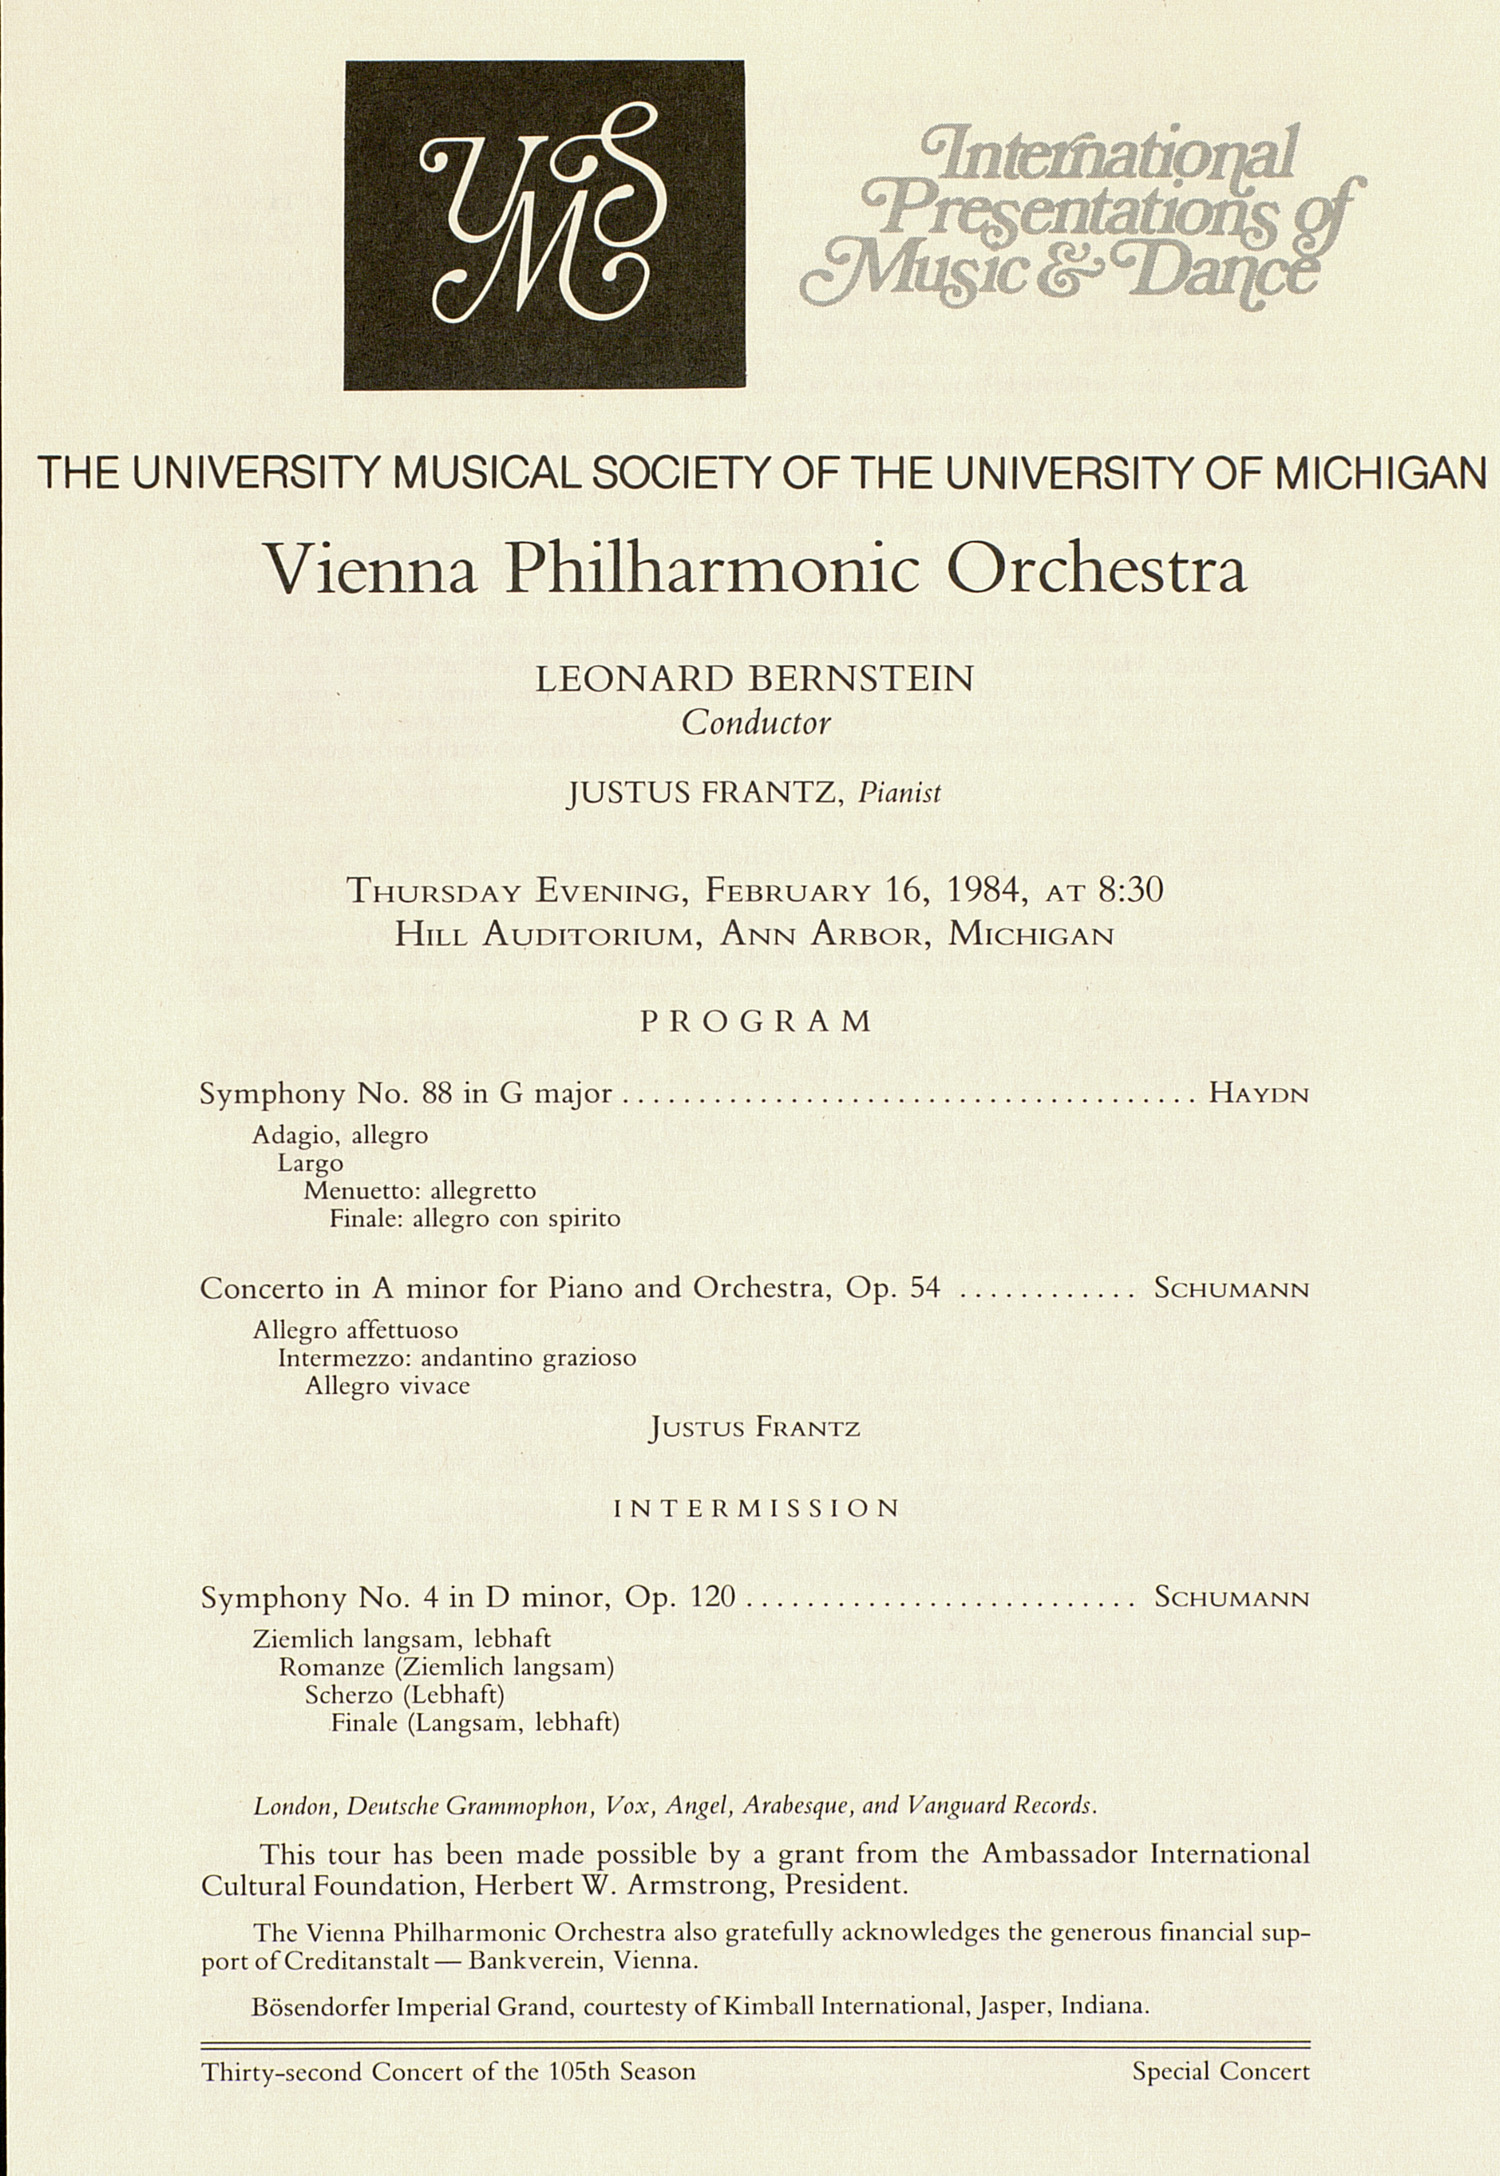 UMS Concert Program, February 16, 1984: International Presentations Of Music & Dance -- Vienna Philharmonic Orchestra image